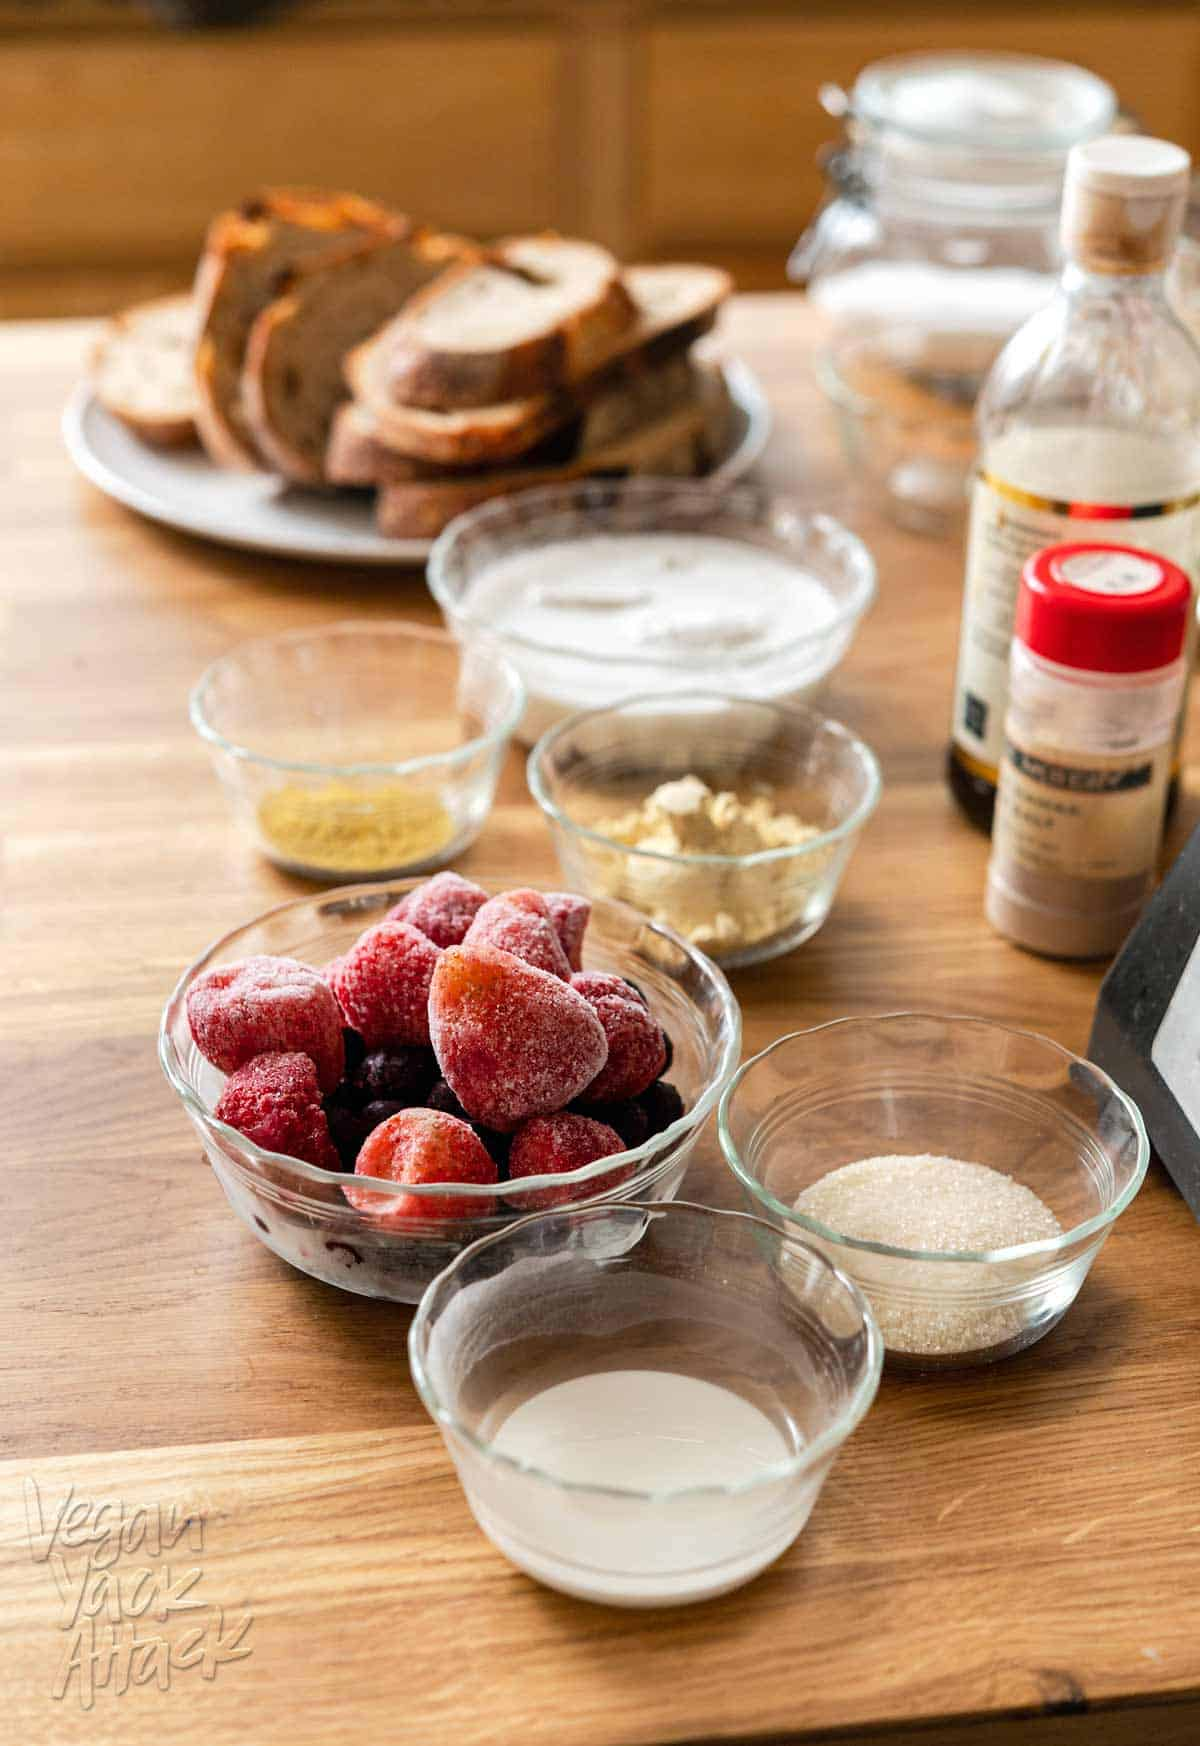 Image of ingredients for recipe laid out on a wood table